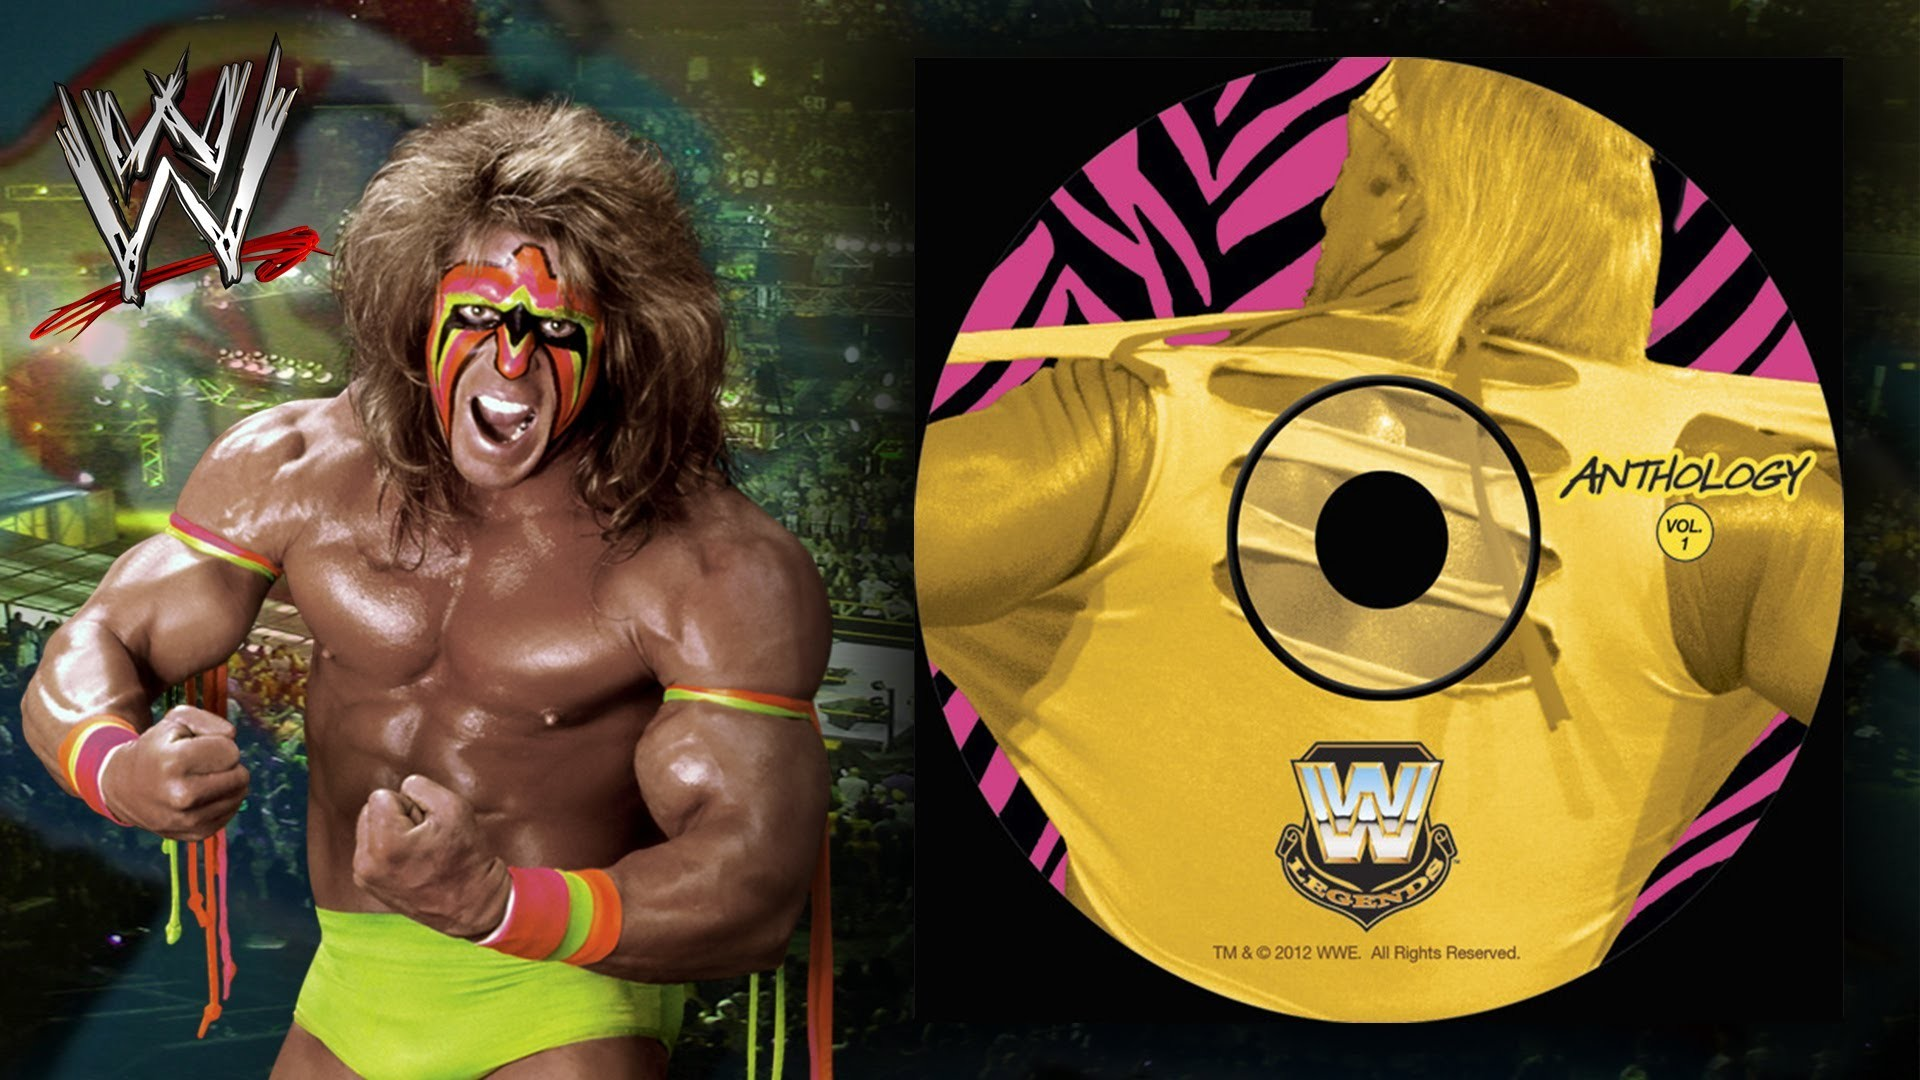 """WWE: """"Unstable"""" (Ultimate Warrior) Theme Song + AE (Arena Effect) – YouTube"""